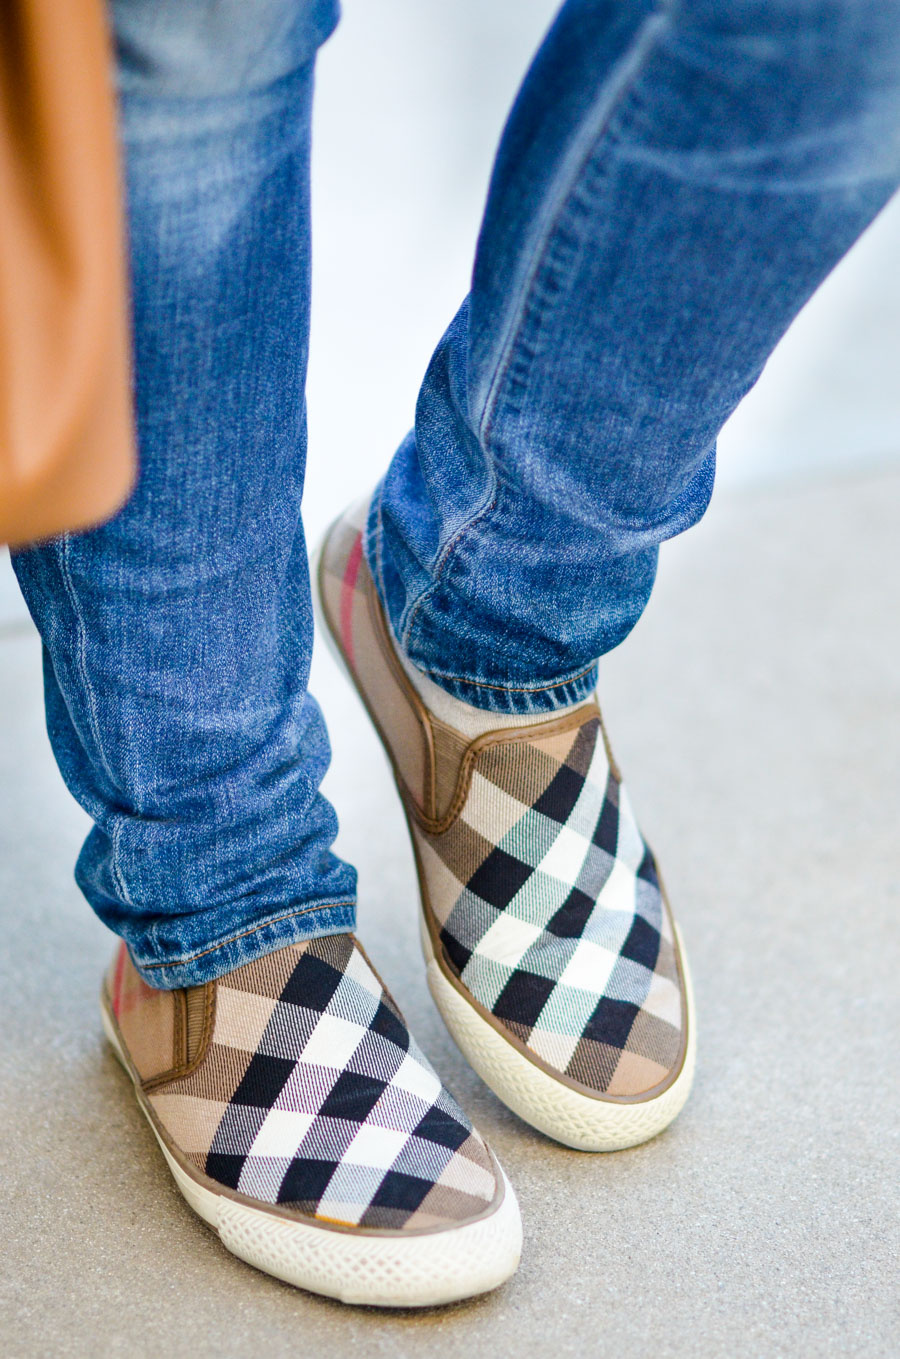 Burberry Outfit Ideas - Slide in Burberry Sneakers